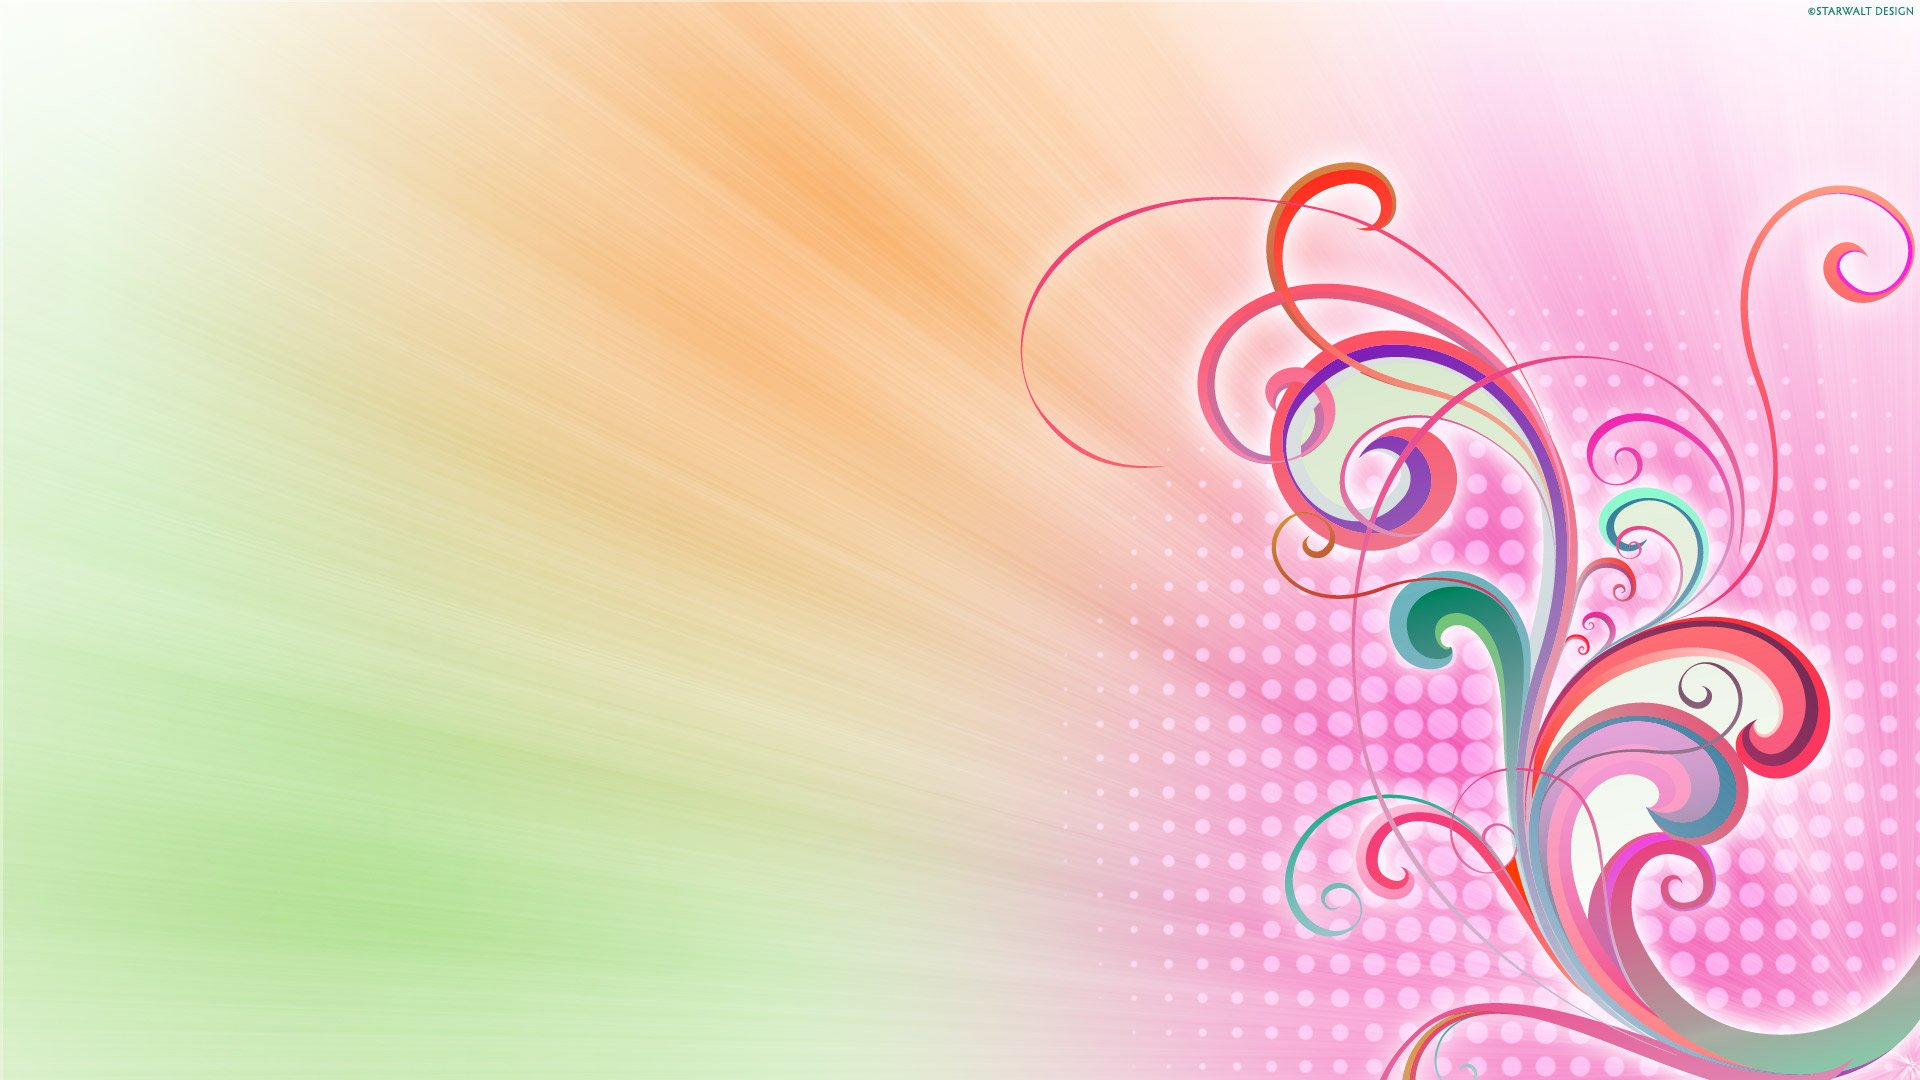 Free Download Nice Design Wallpapers Hd Wallpapers 1920x1080 For